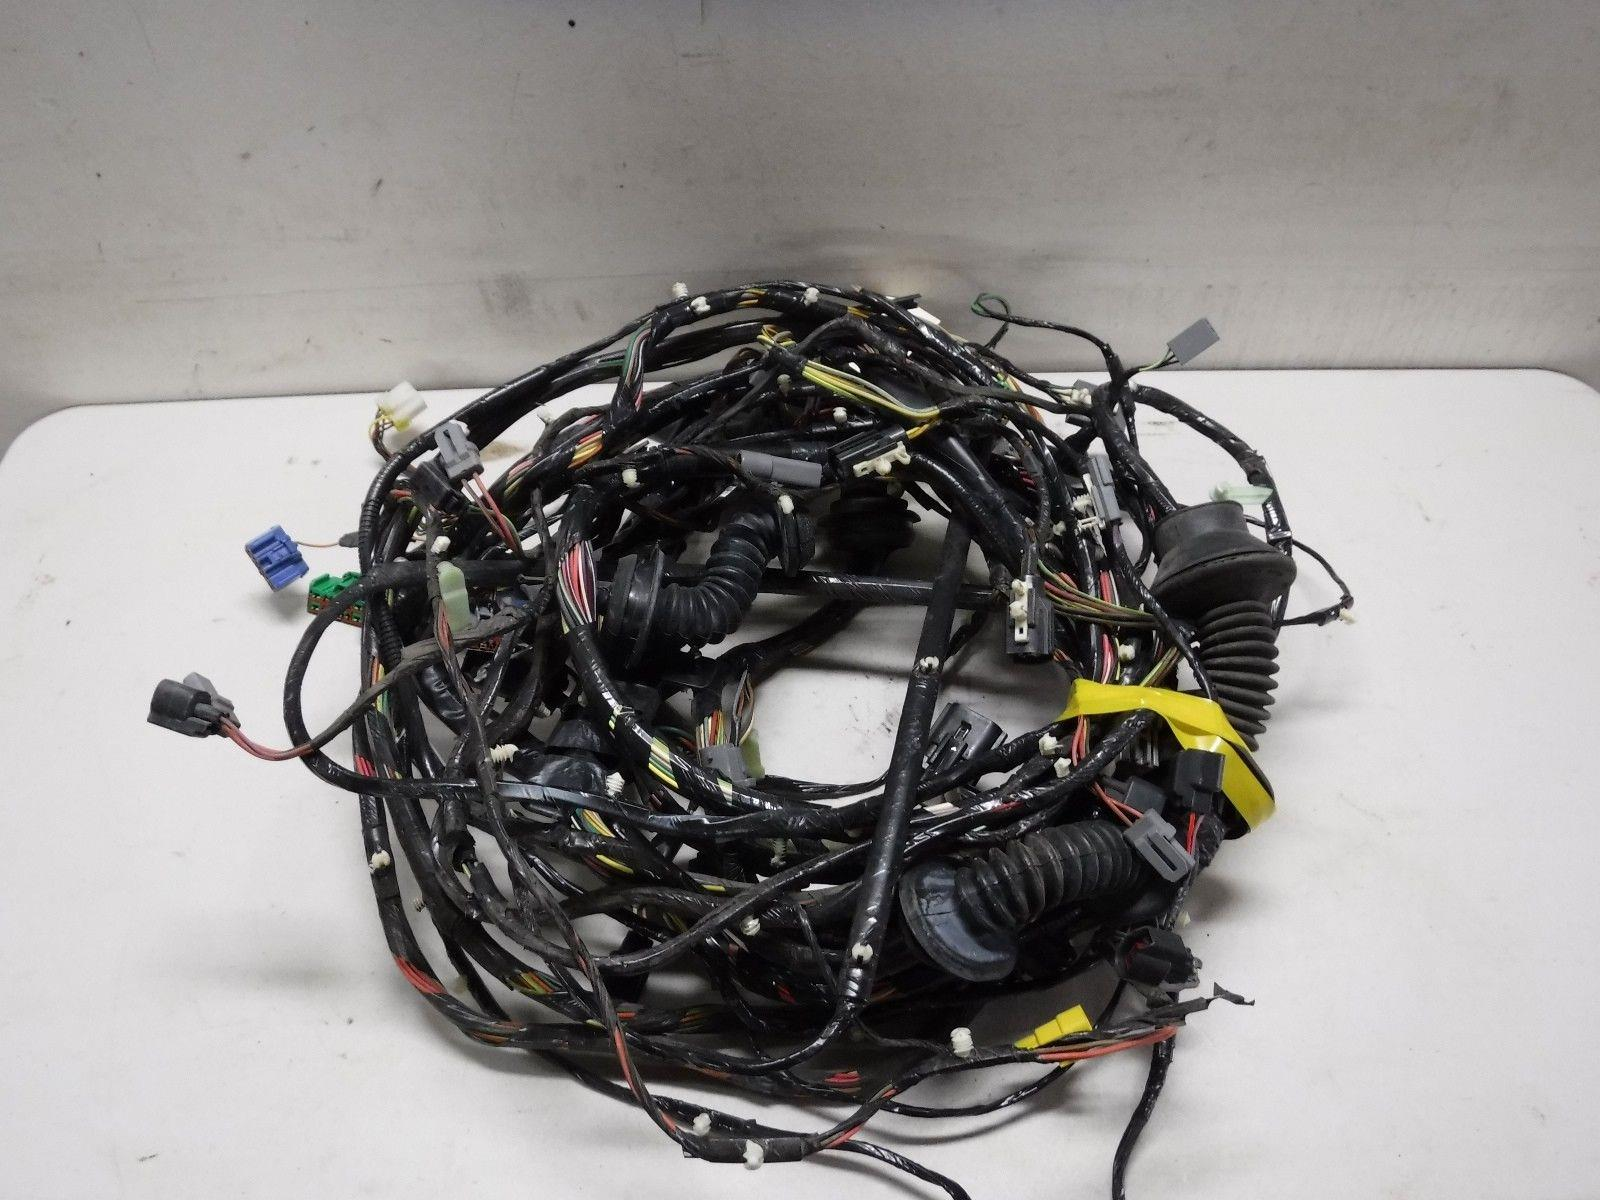 hight resolution of details about 2003 2004 ford f350 lariat fx4 crew cab cab wiring harness 4c3t14a005 xh oem